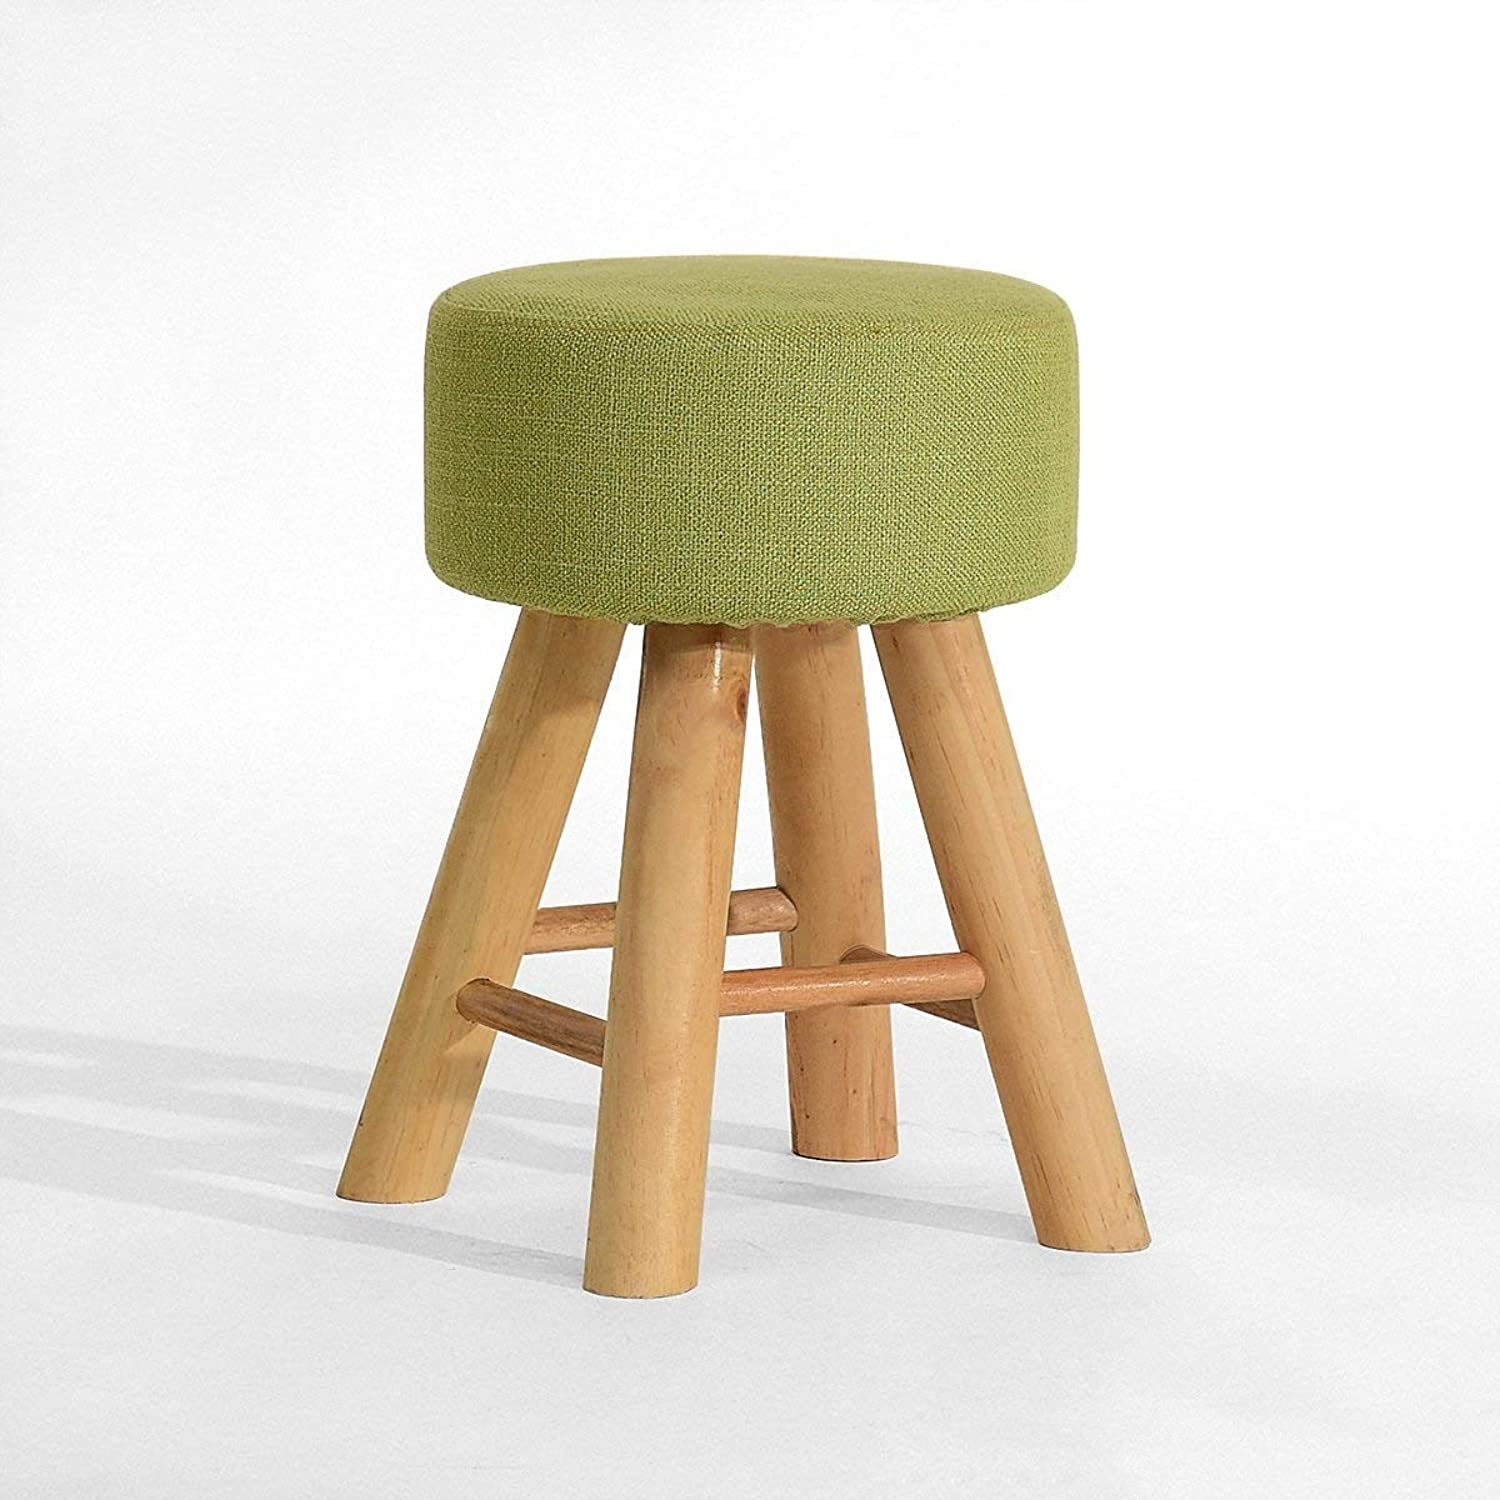 STTS Chair- Bar Stool Solid Wood + Fabric Creative Fashion Household Practical Stool